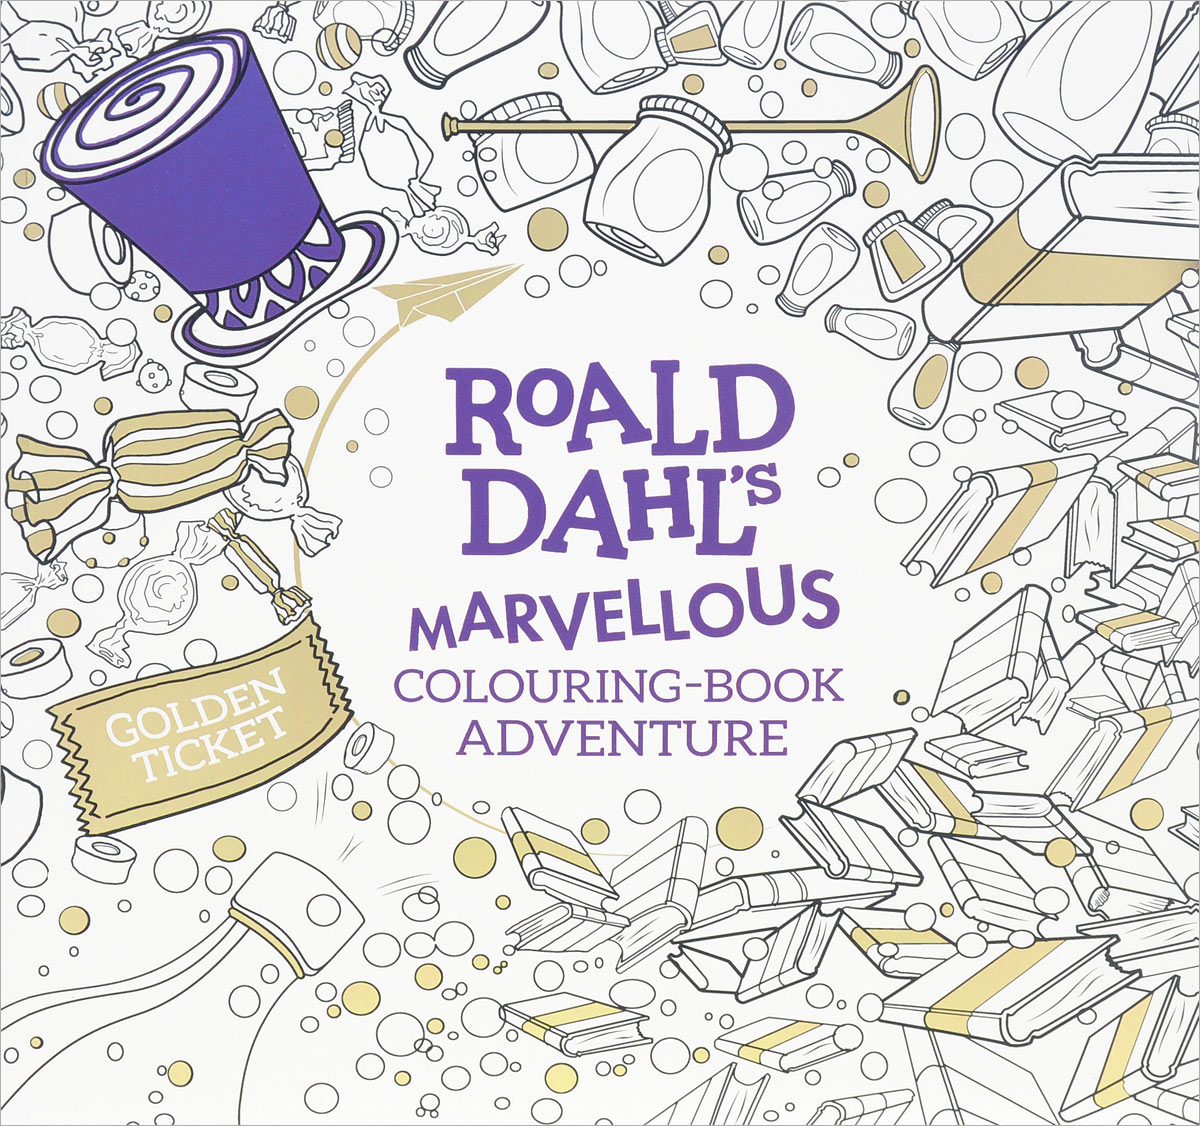 Roald Dahl's Marvellous Colouring-Book Adventure die hard the official colouring book